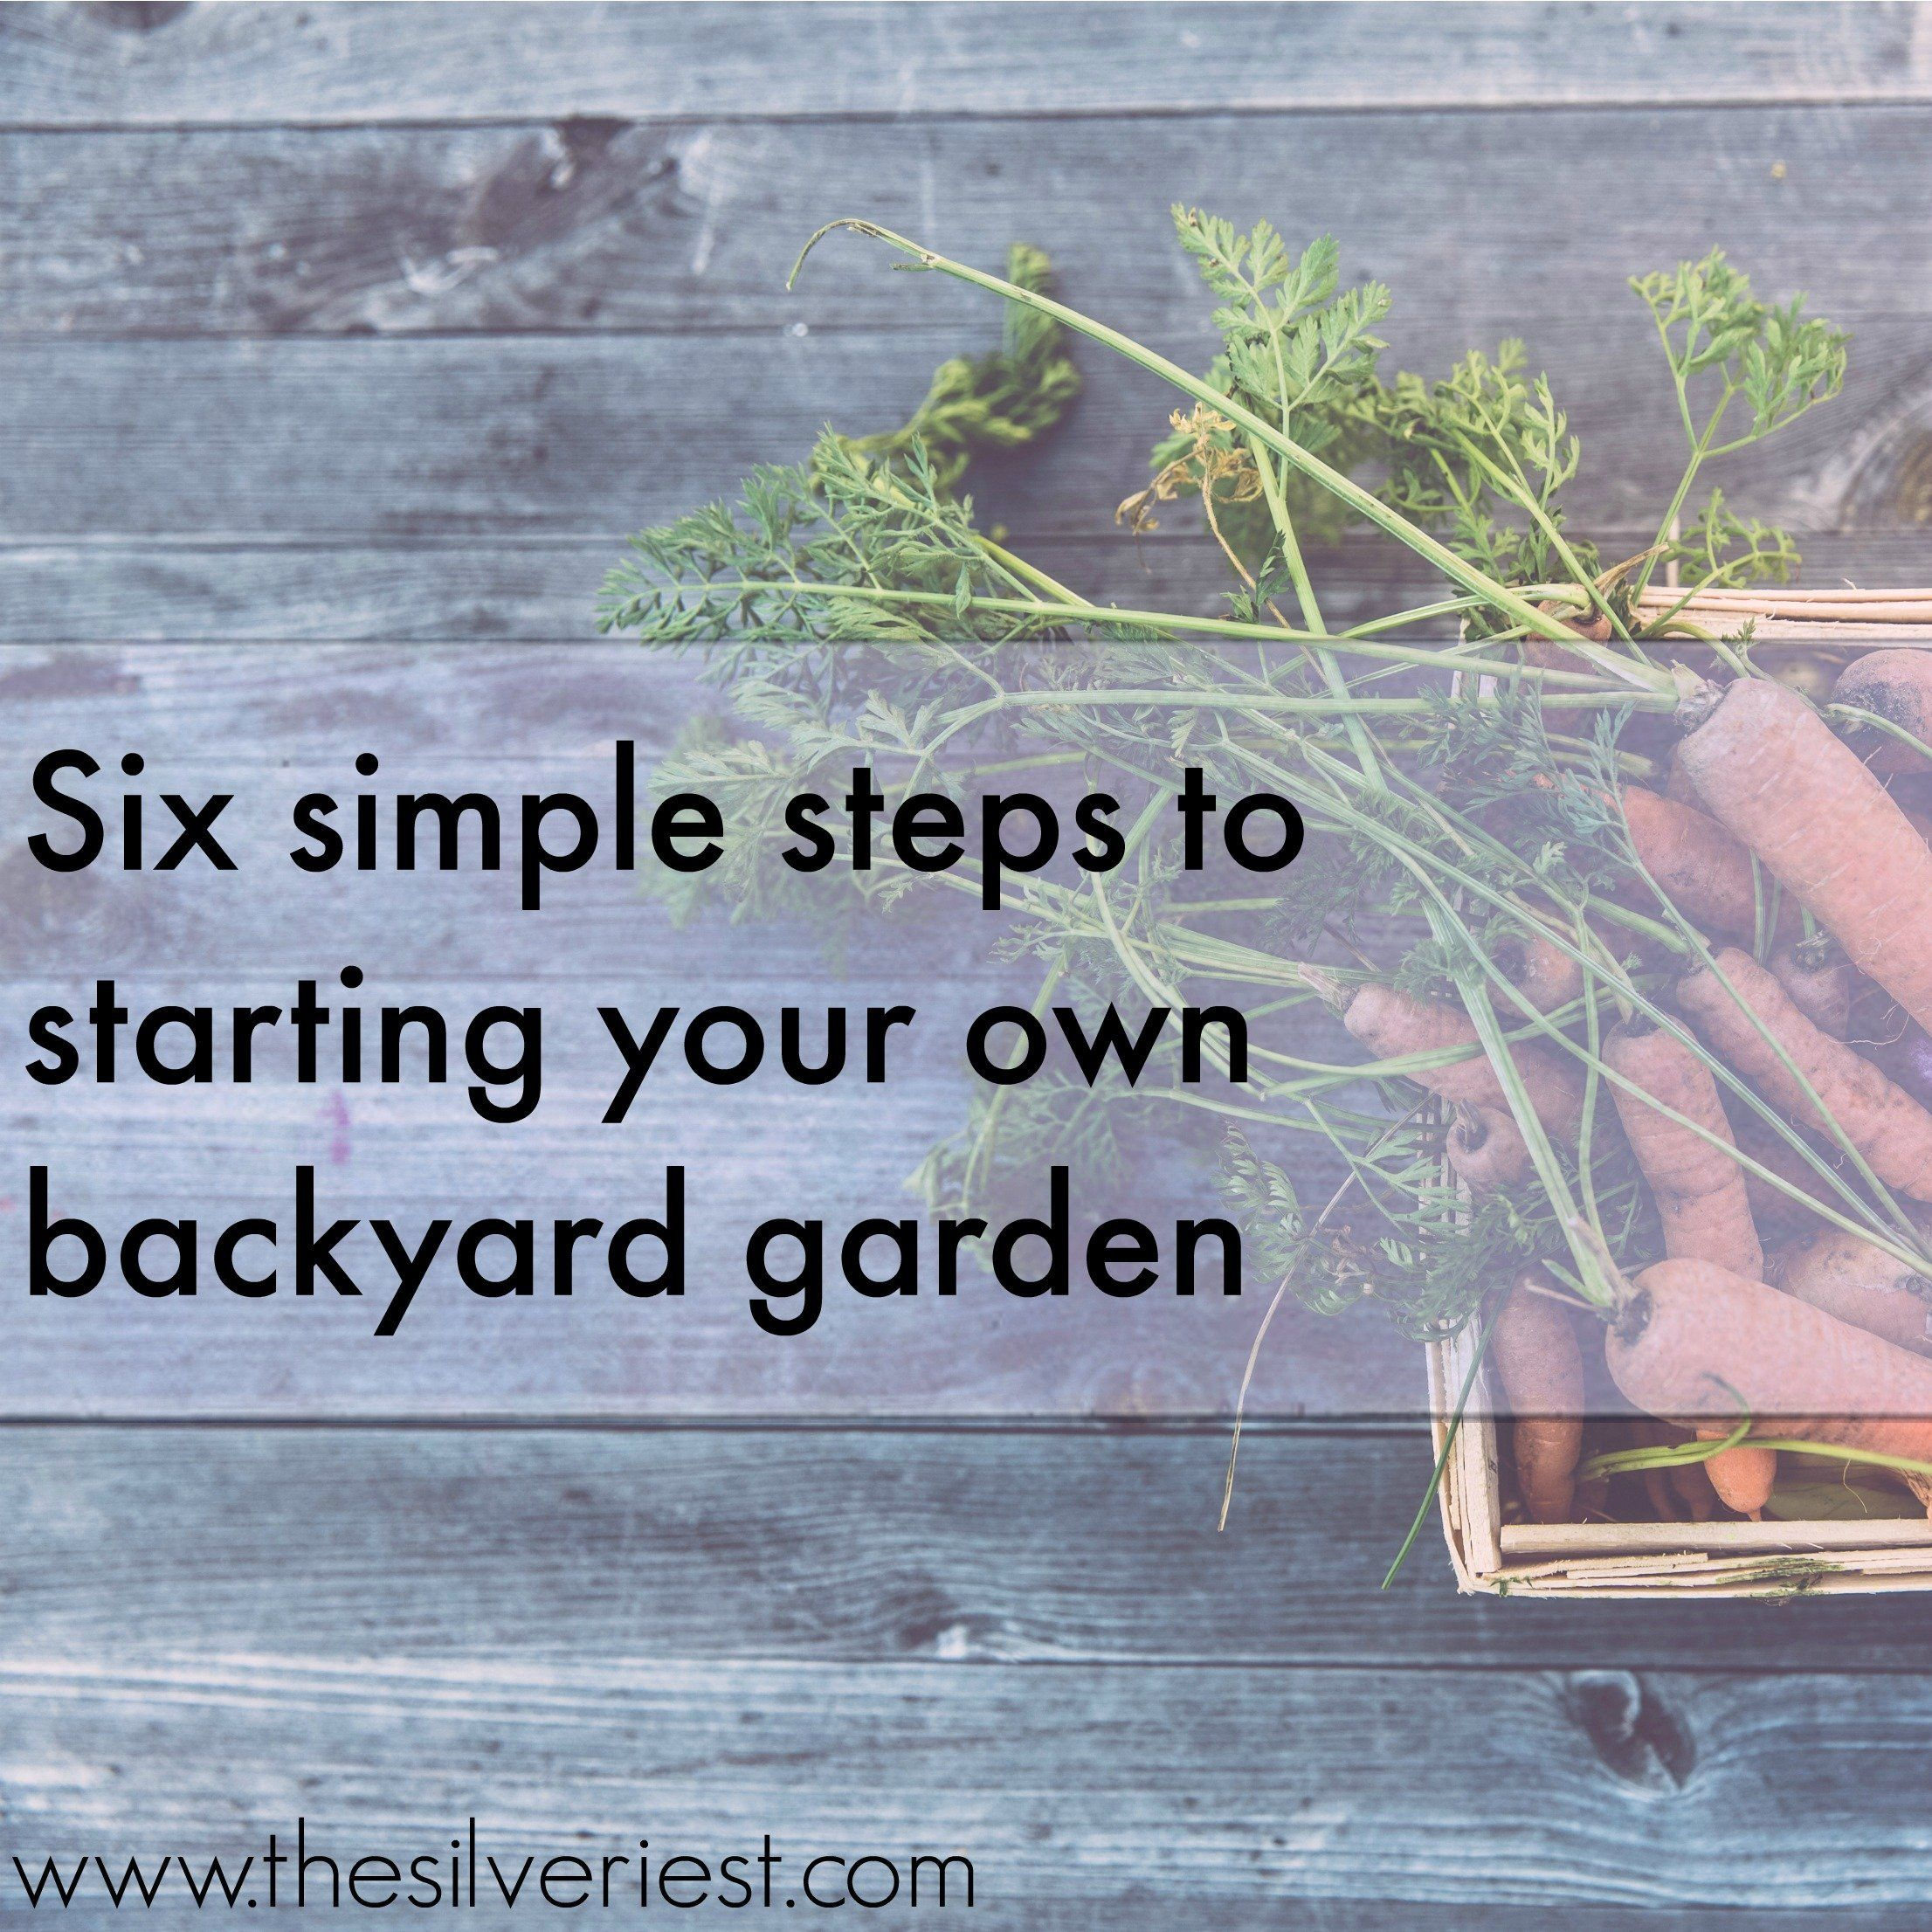 Getting started with a vegetable garden can be so overwhelming! Here is a straightforward overview of six simple steps to start your own backyard garden. www.thesilveriest.com